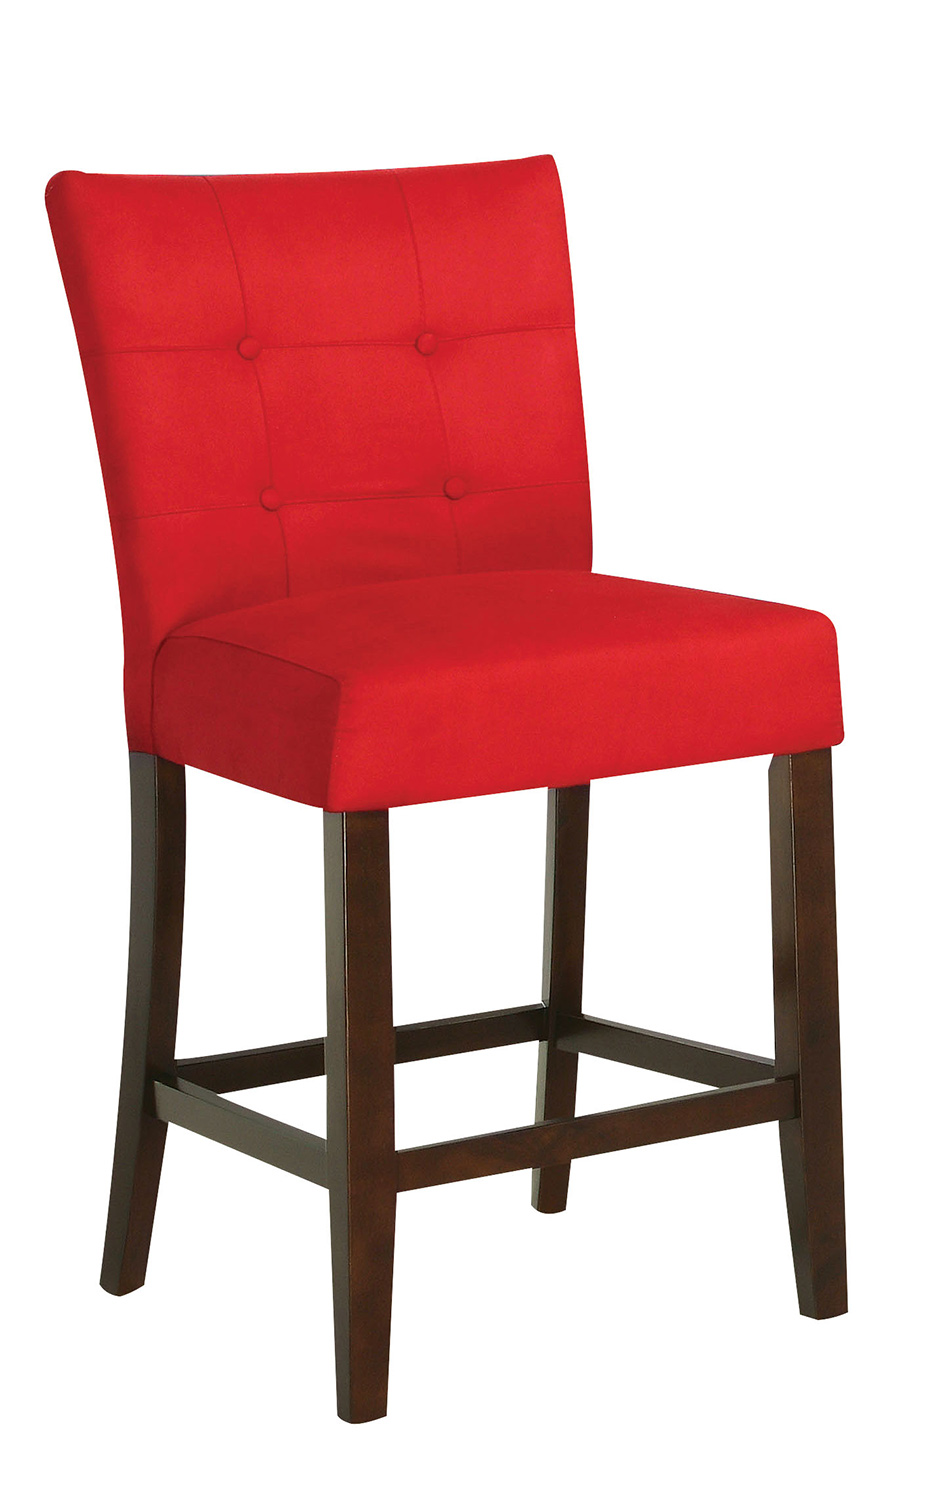 Acme Baldwin Counter Height Chair - Red/Walnut